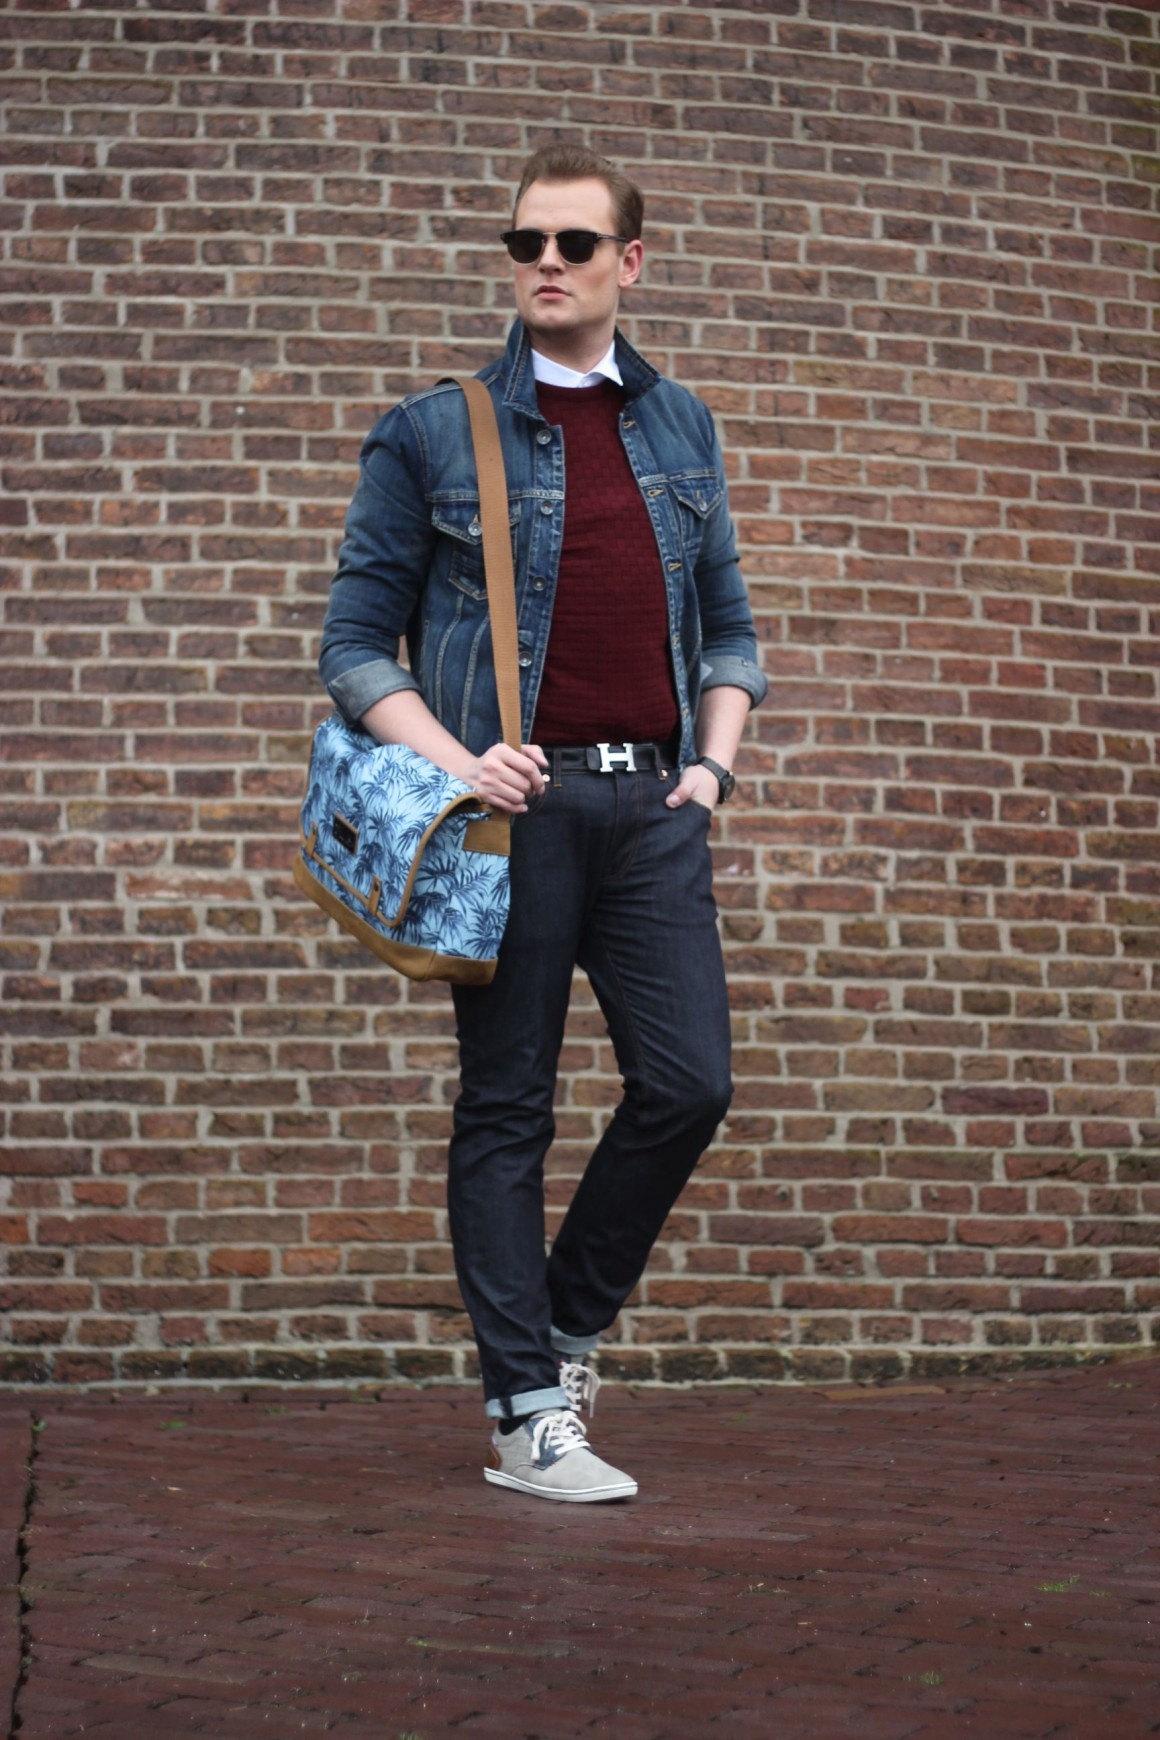 Casual School outfit x Van Haren JustKVN menswear and lifestyle blog